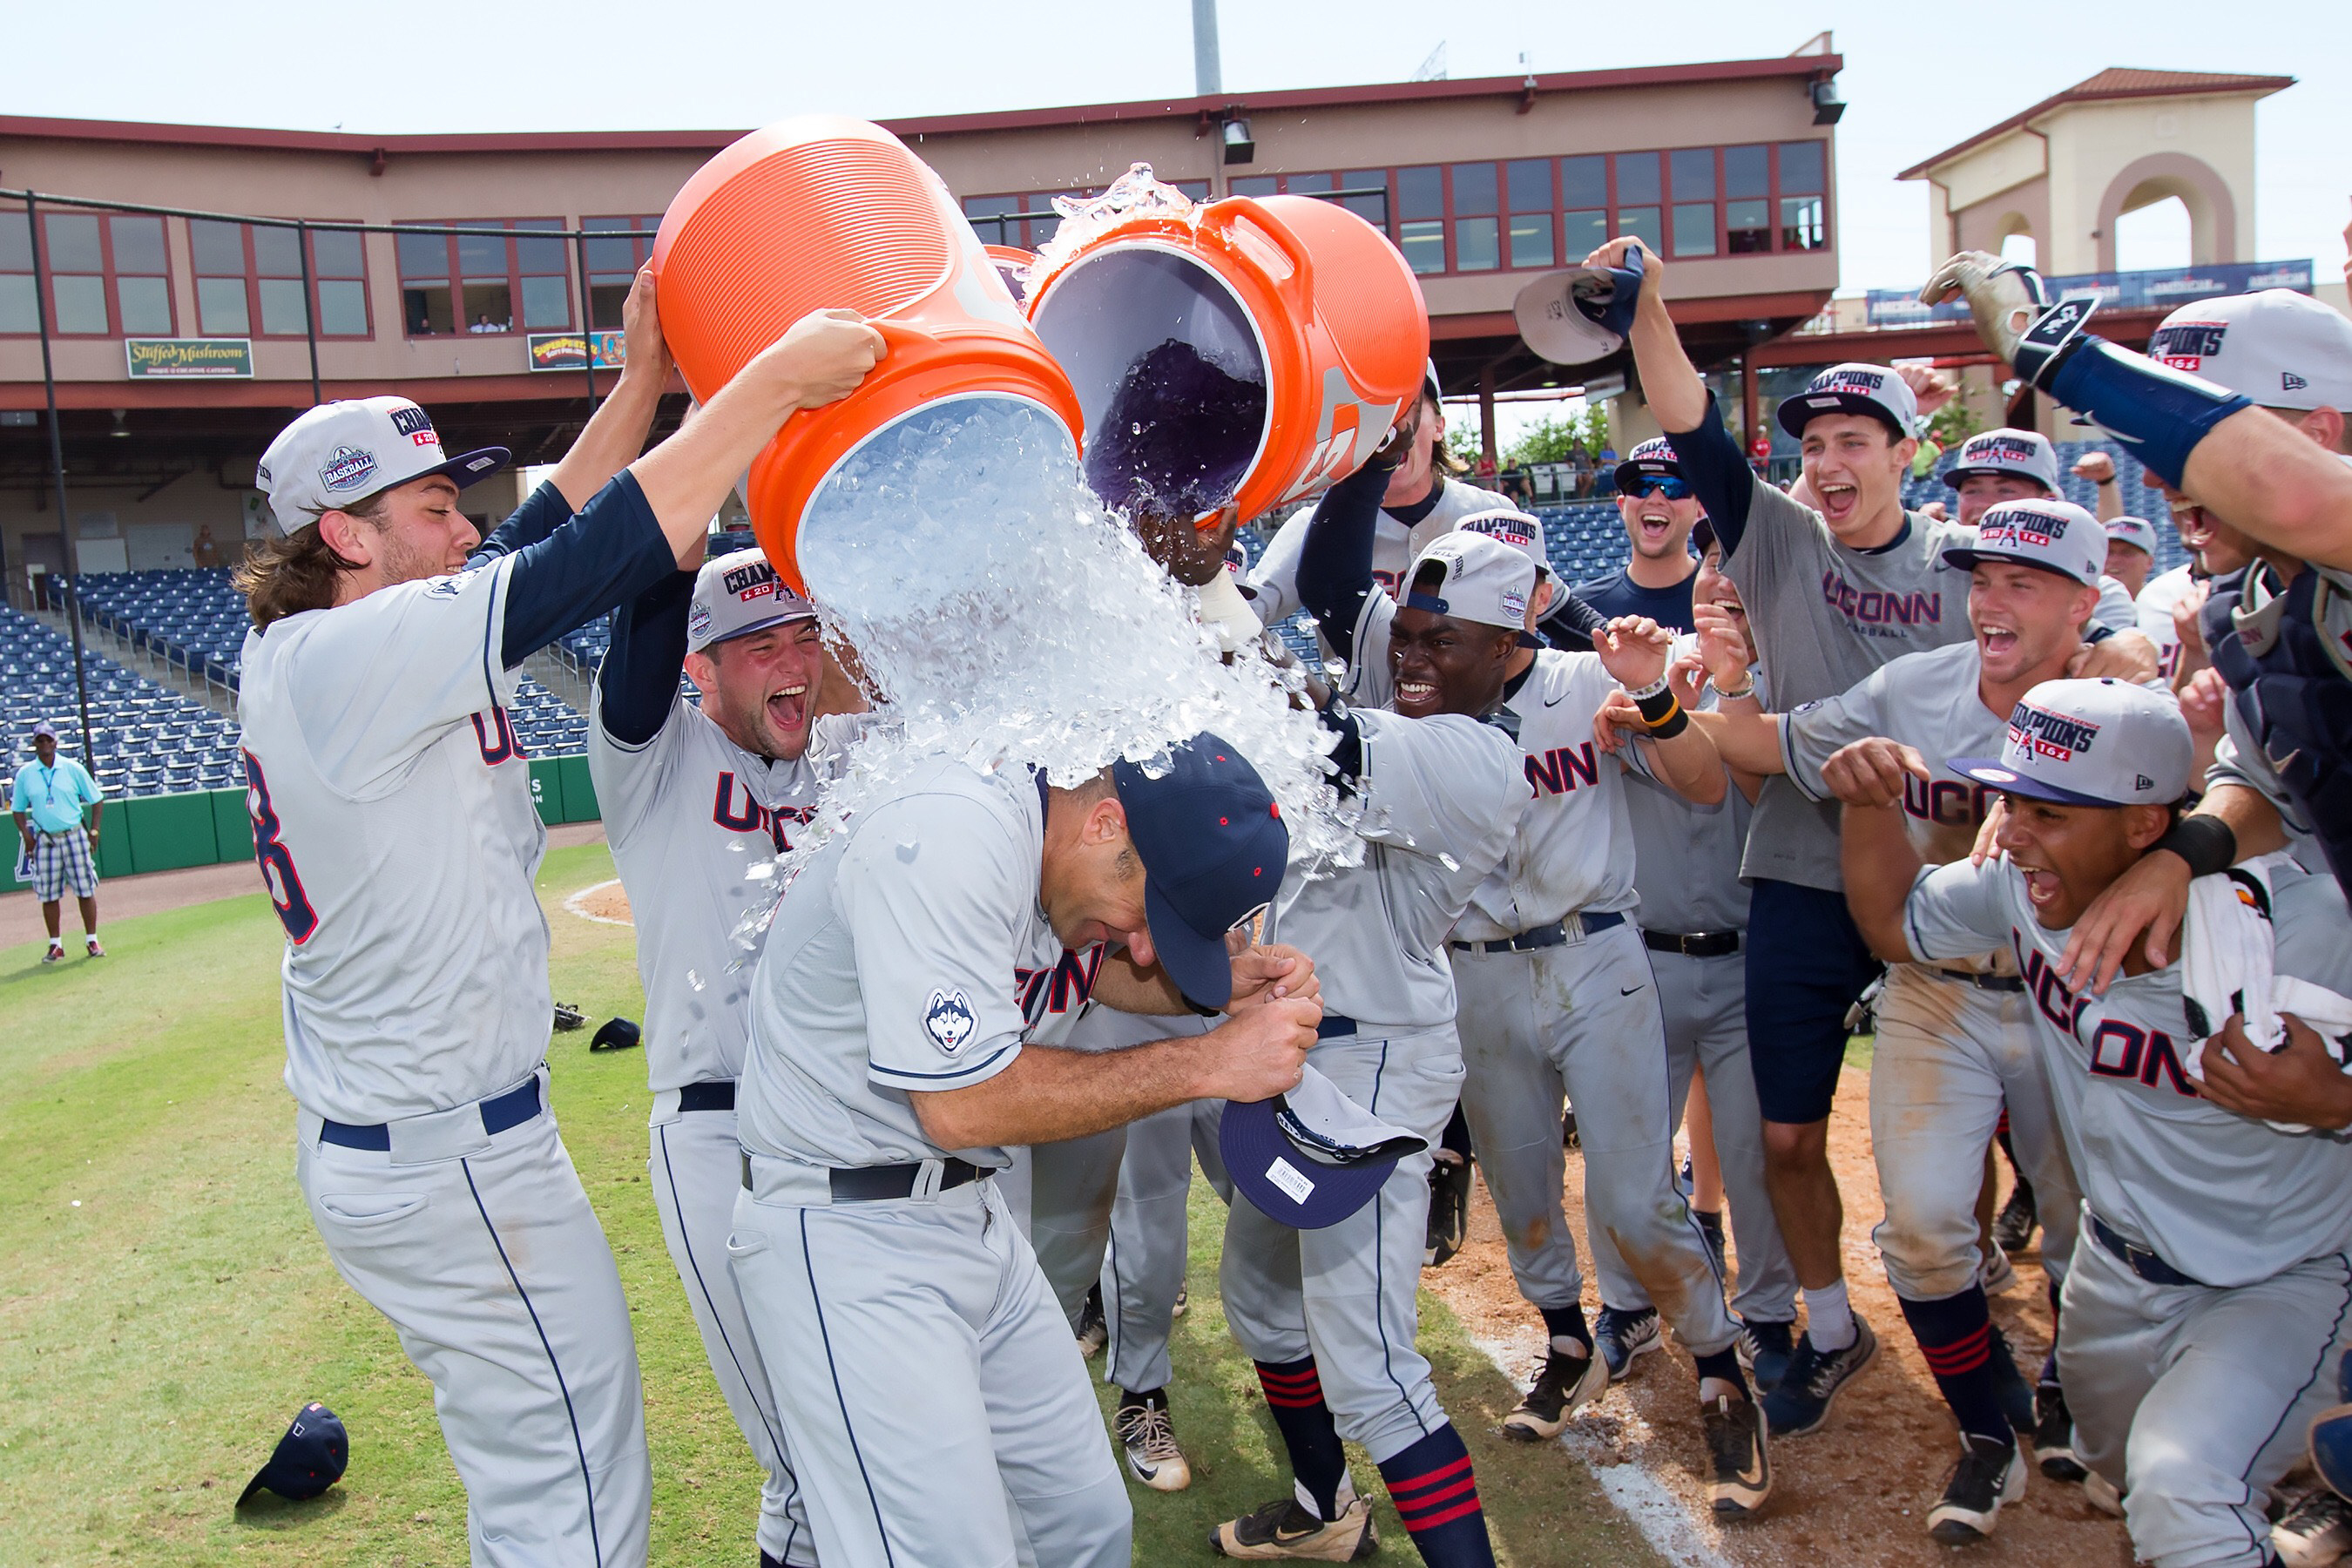 Penders led the Huskies to their first-ever American Athletic Conference crown last season. Here he is seen doused with ice and Gatorade by his team.